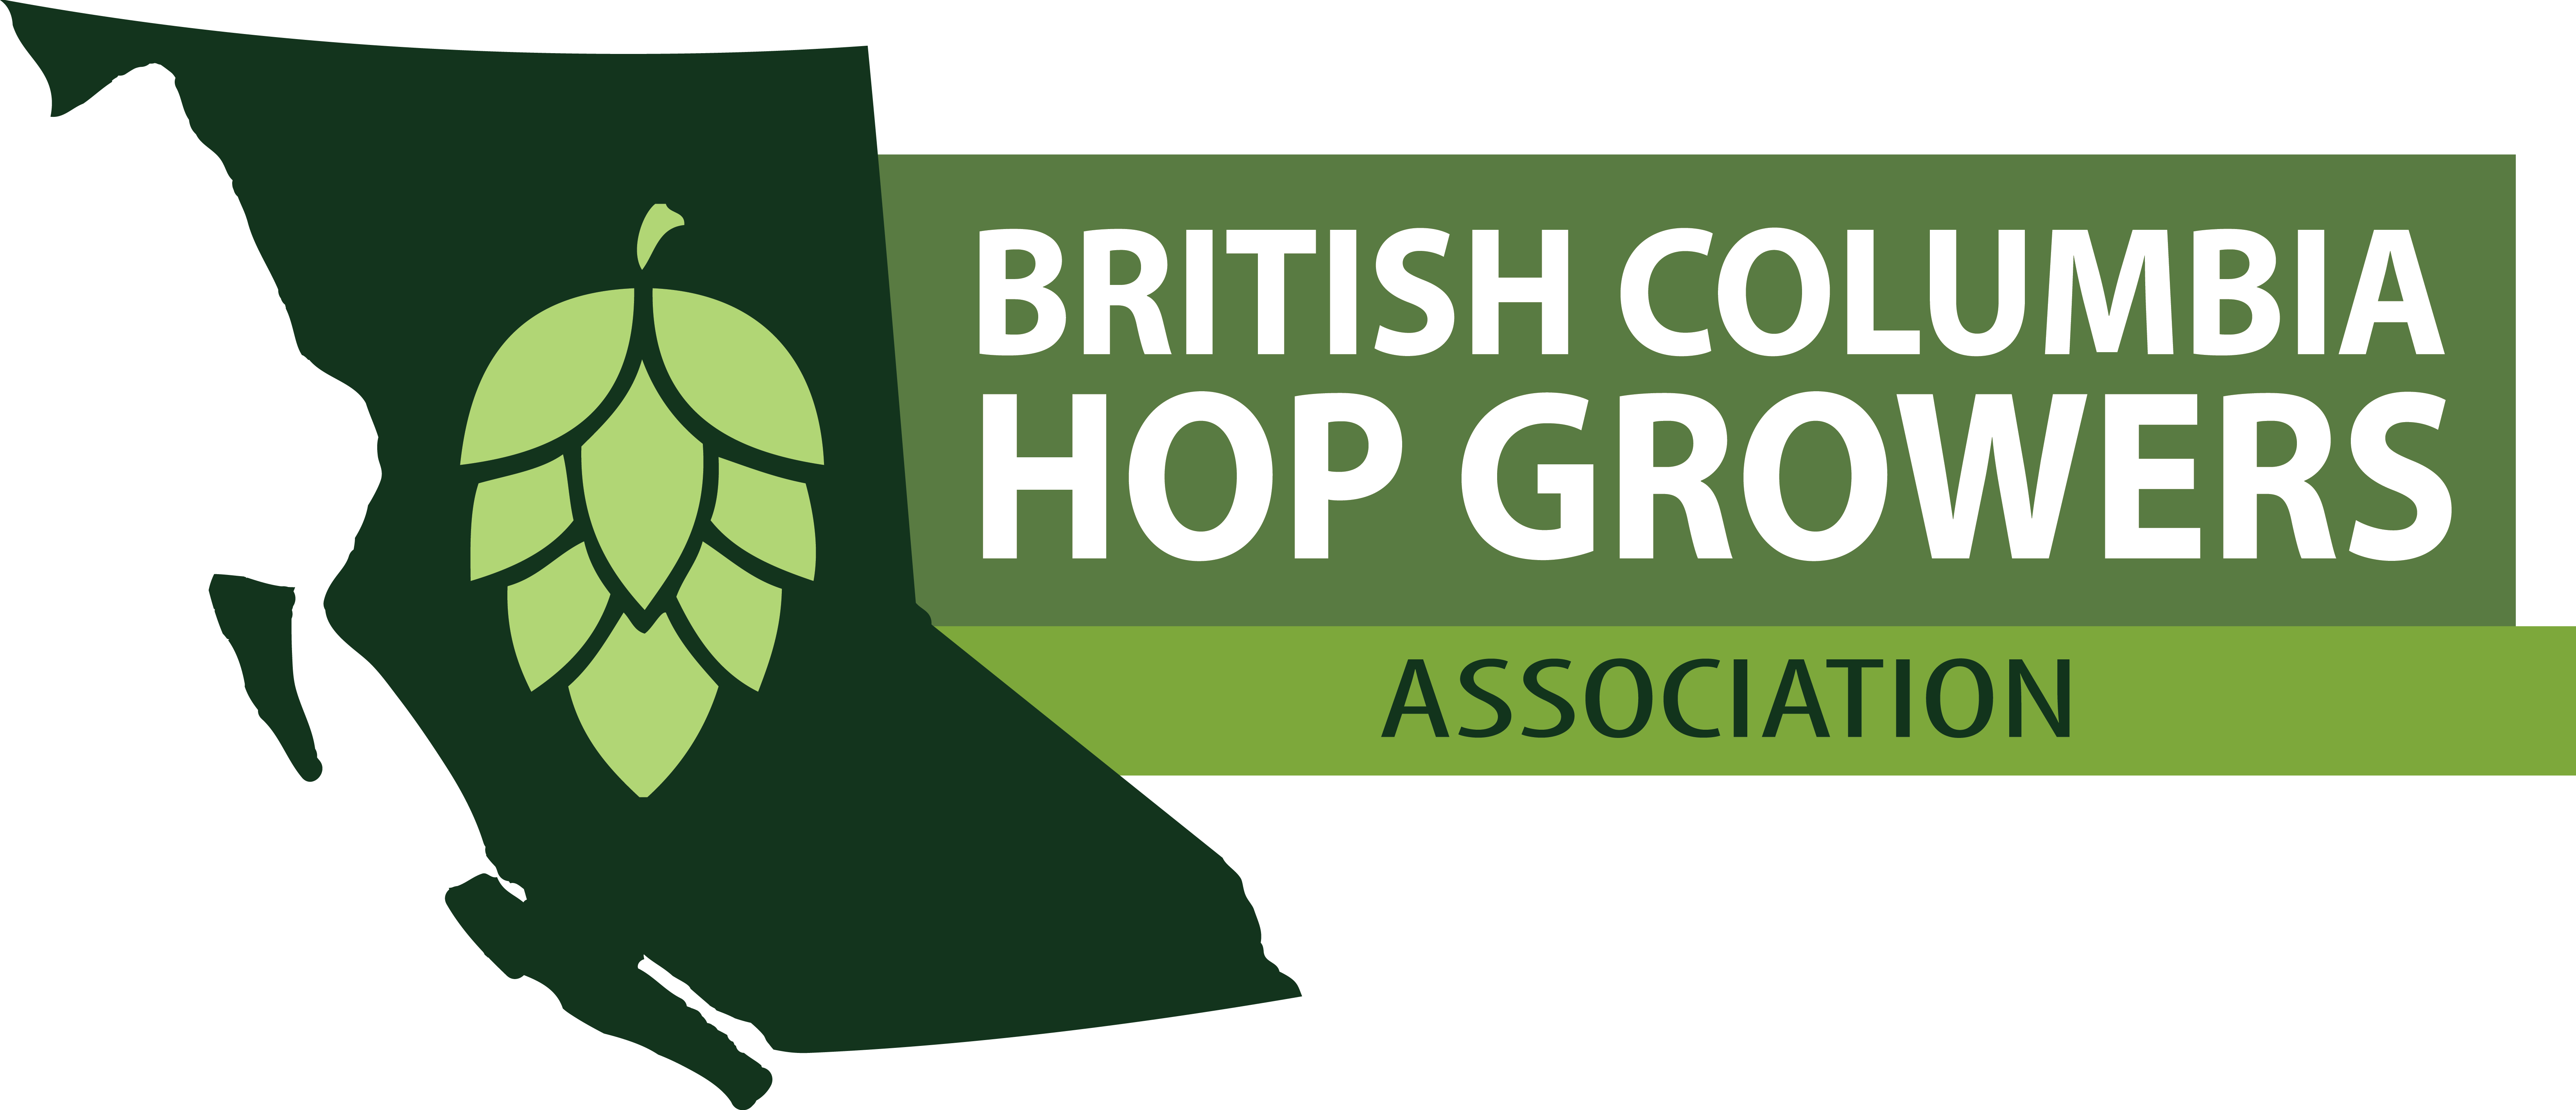 BC Hop Growers Association | British Columbia | Hop Growers